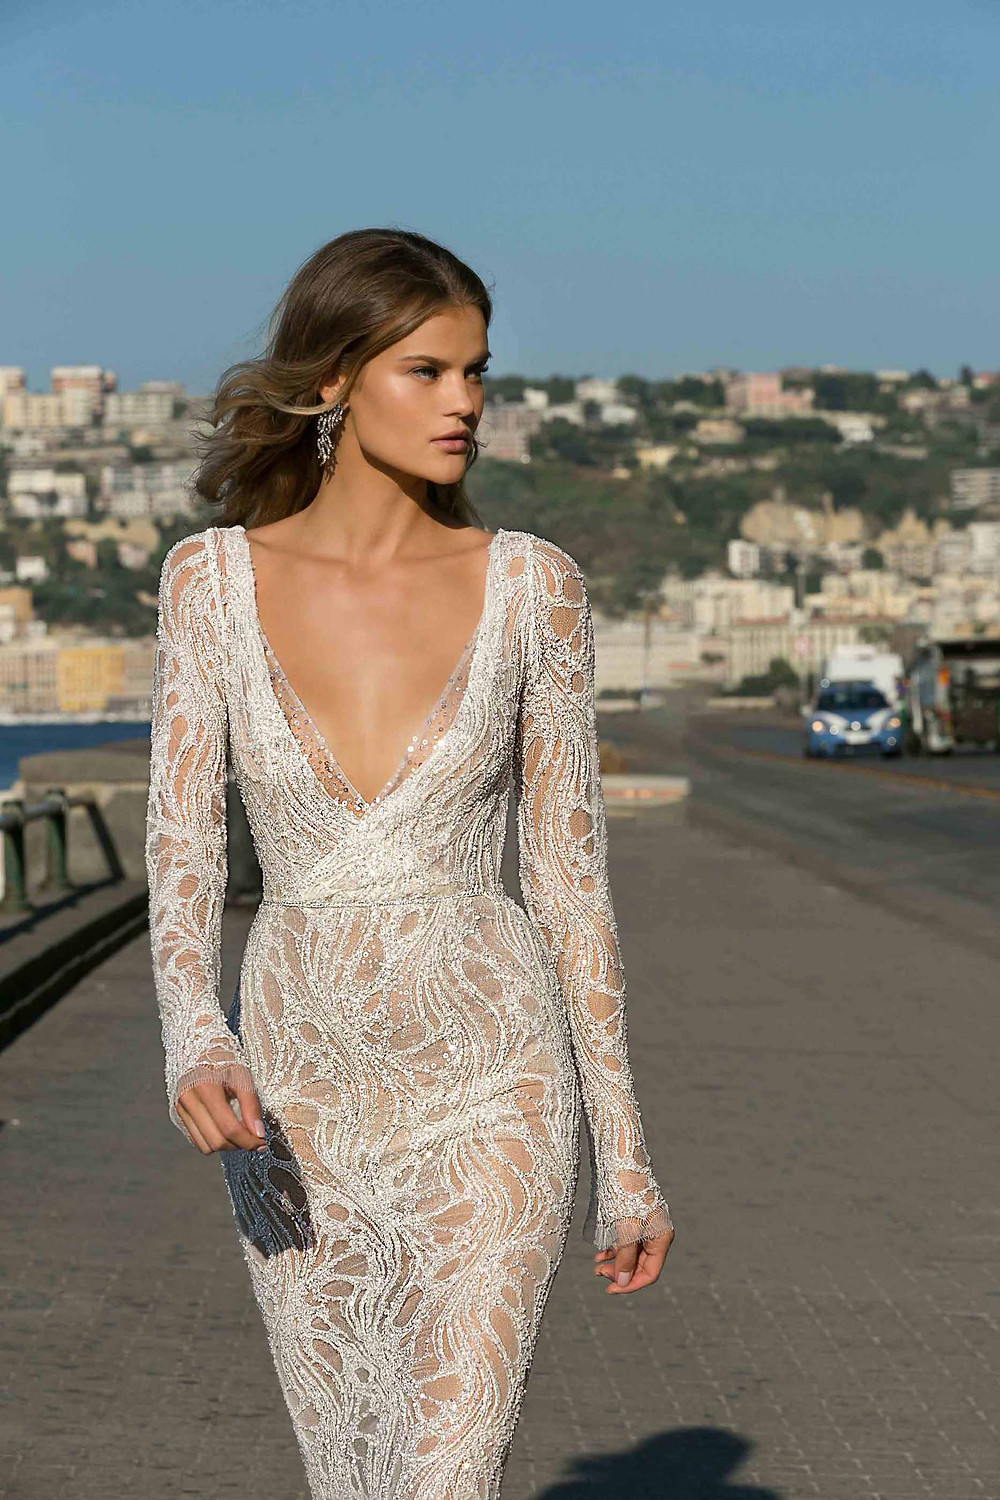 A sexy sheath wedding dress, with lace, a low v neckline and long sleeves